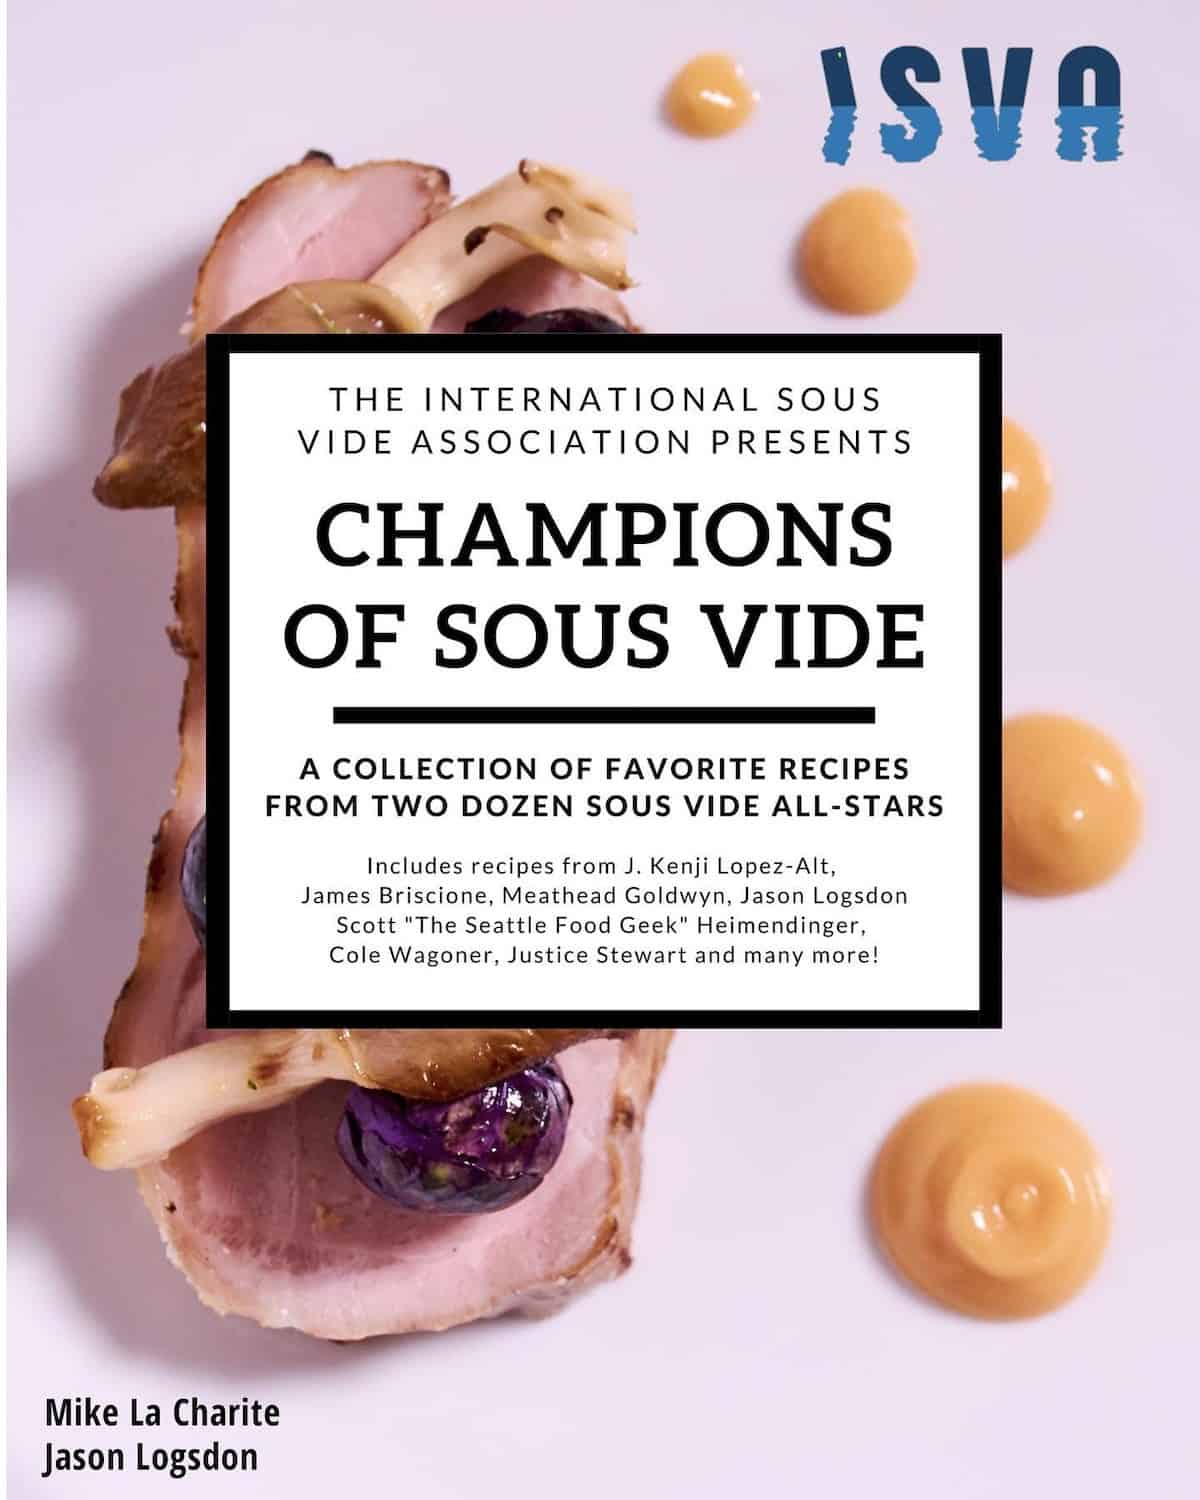 Champions of Sous Vide cookbook provides great learning